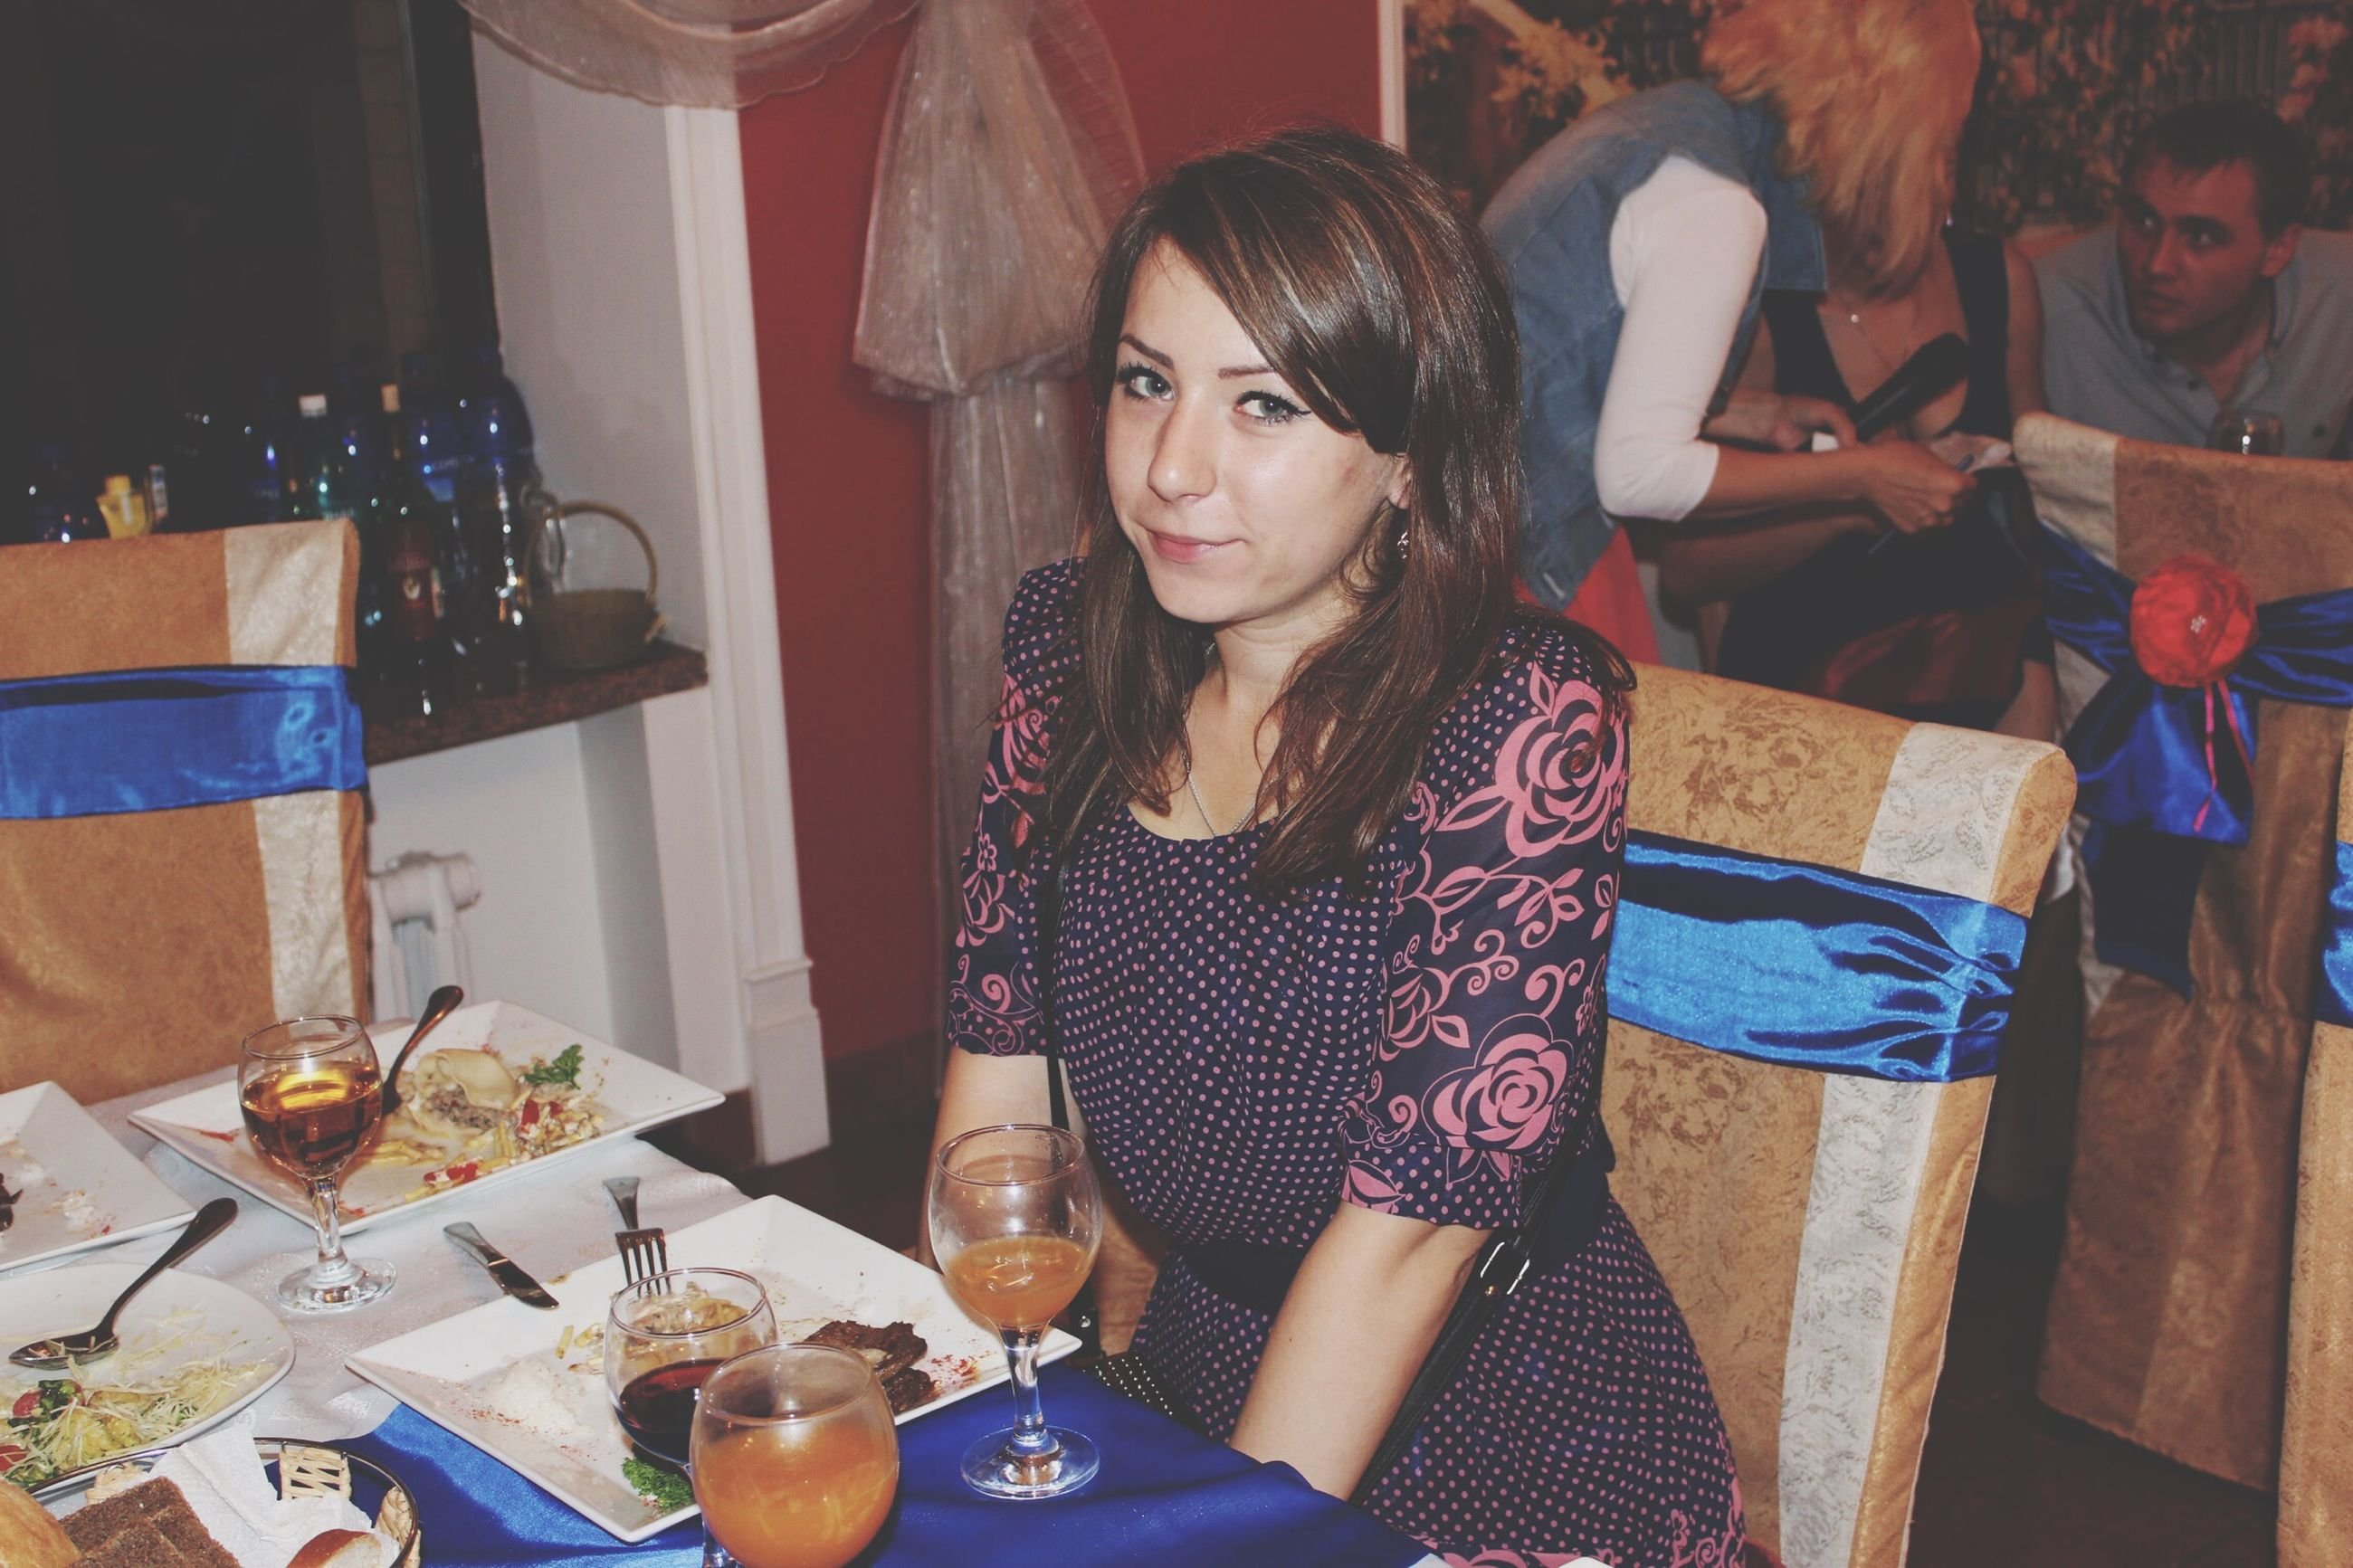 indoors, food and drink, lifestyles, casual clothing, table, young adult, leisure activity, person, front view, holding, portrait, drink, young women, looking at camera, food, restaurant, waist up, sitting